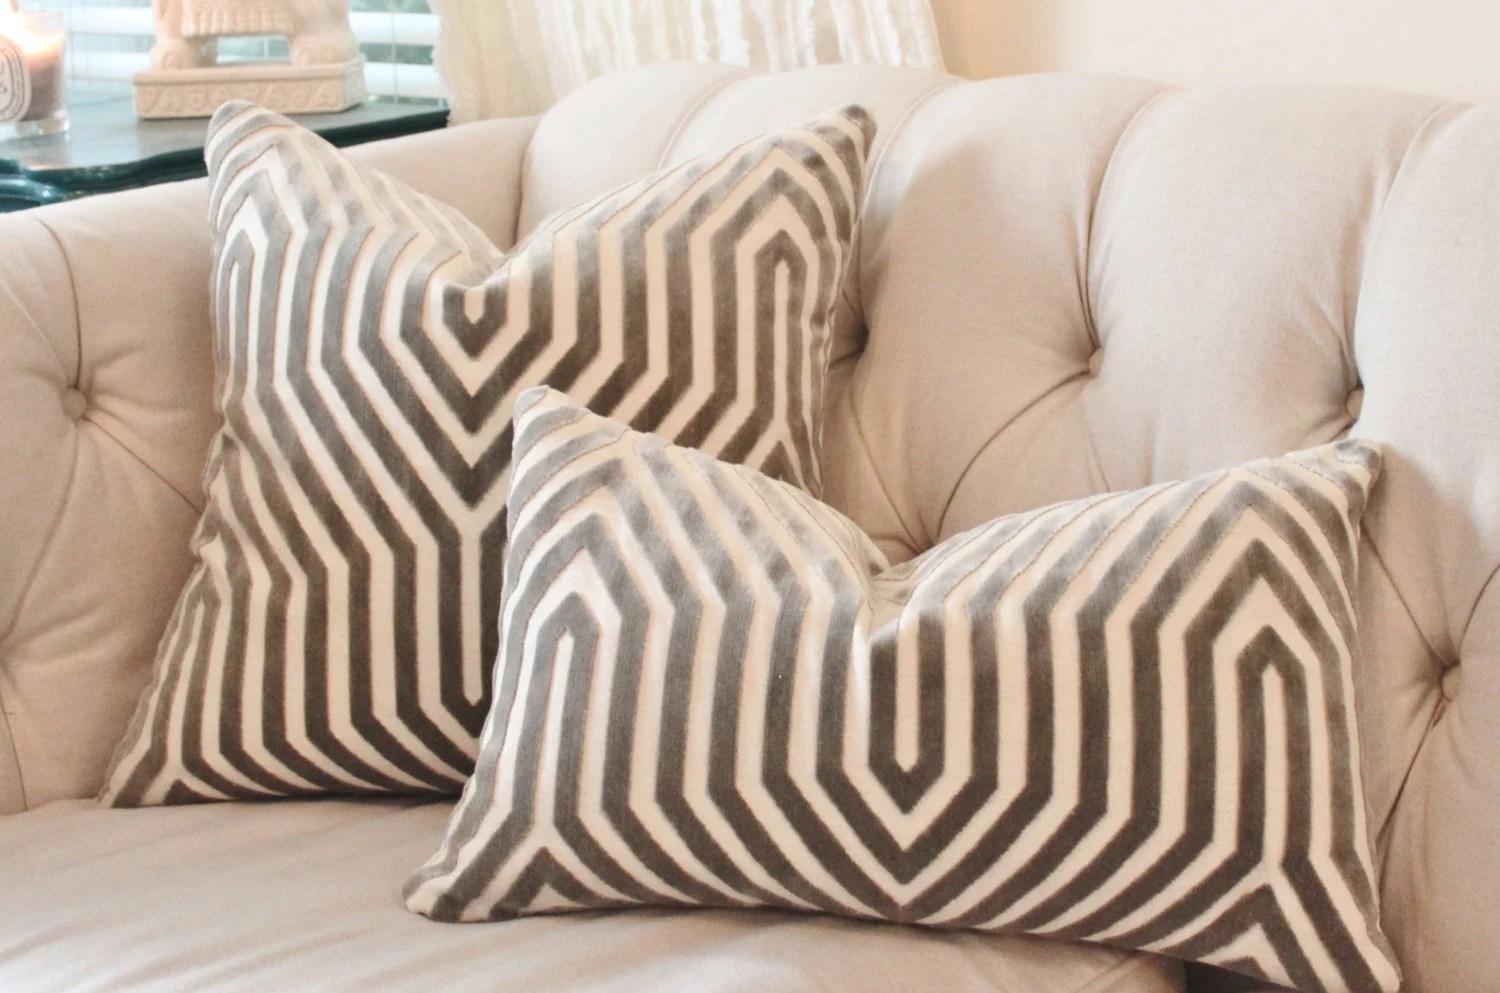 Designer Geometric Pillow Mary McDonald Gray Pillow Cover